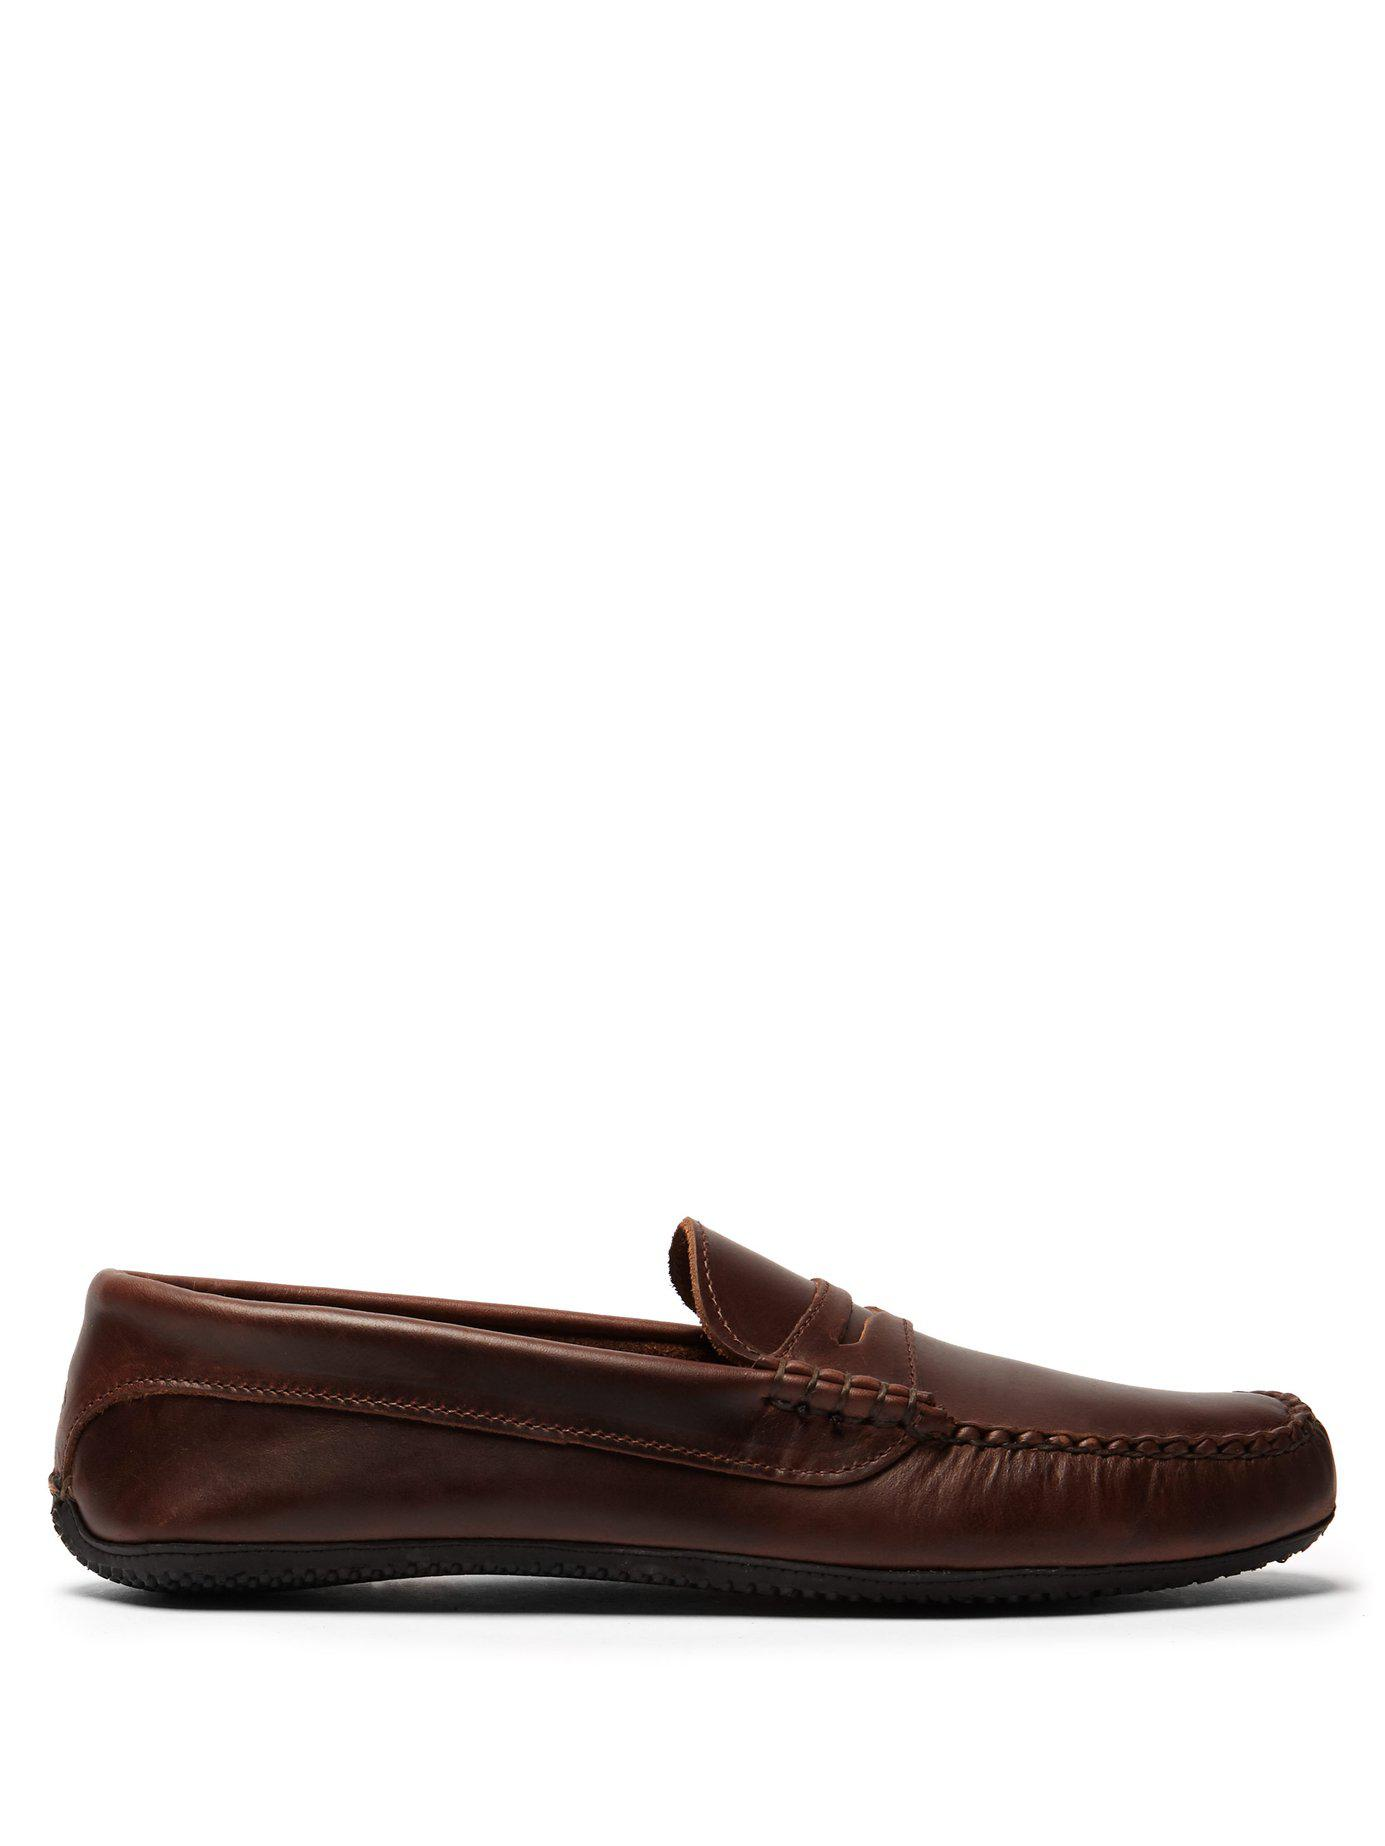 c606cb26504 Lyst - Quoddy Penny Driver Leather Loafers in Brown for Men